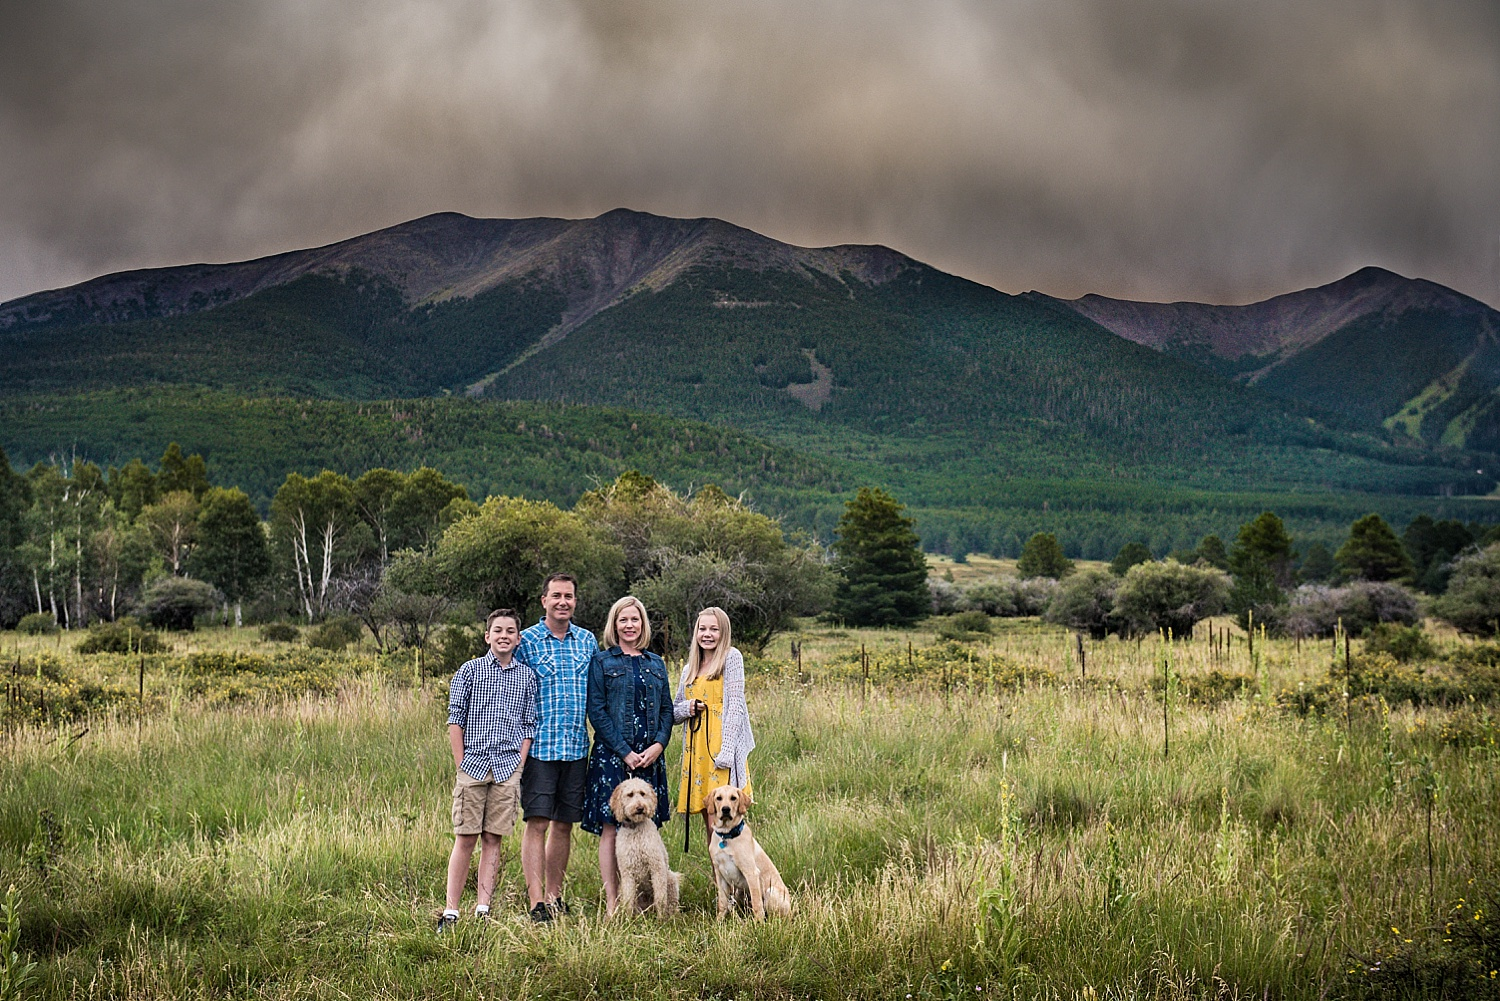 001-springborn-flagstaff-family-photos-©2017ther2studio--Edit-2